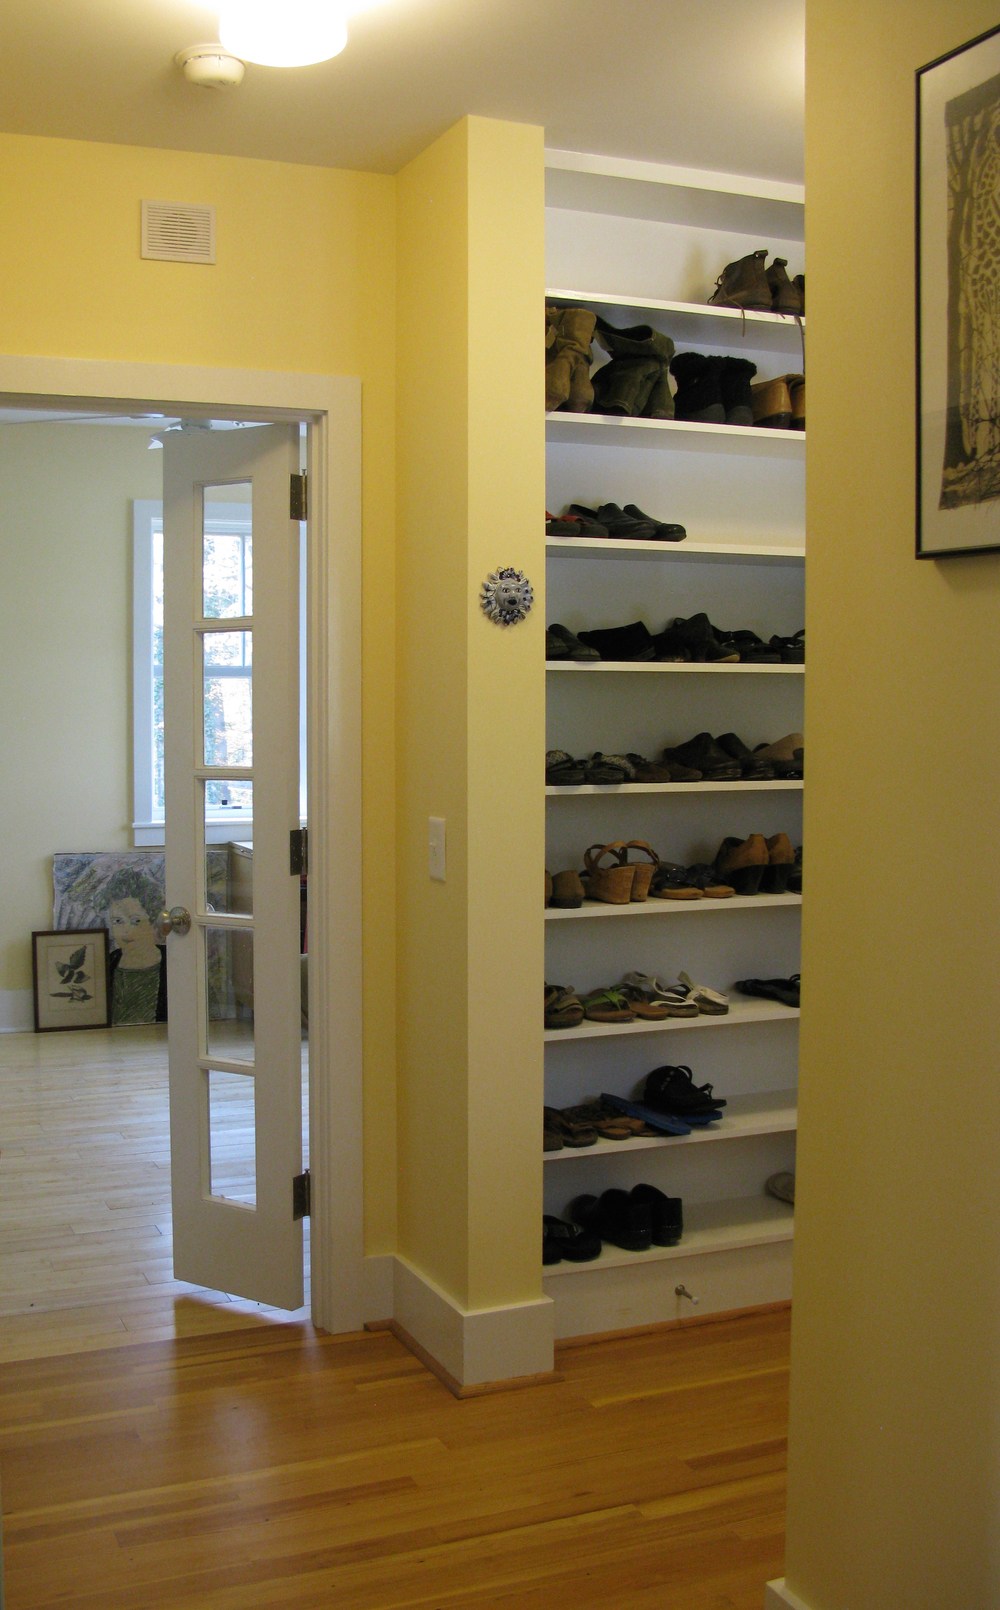 04Rear entry:shoe shelves copy.JPG